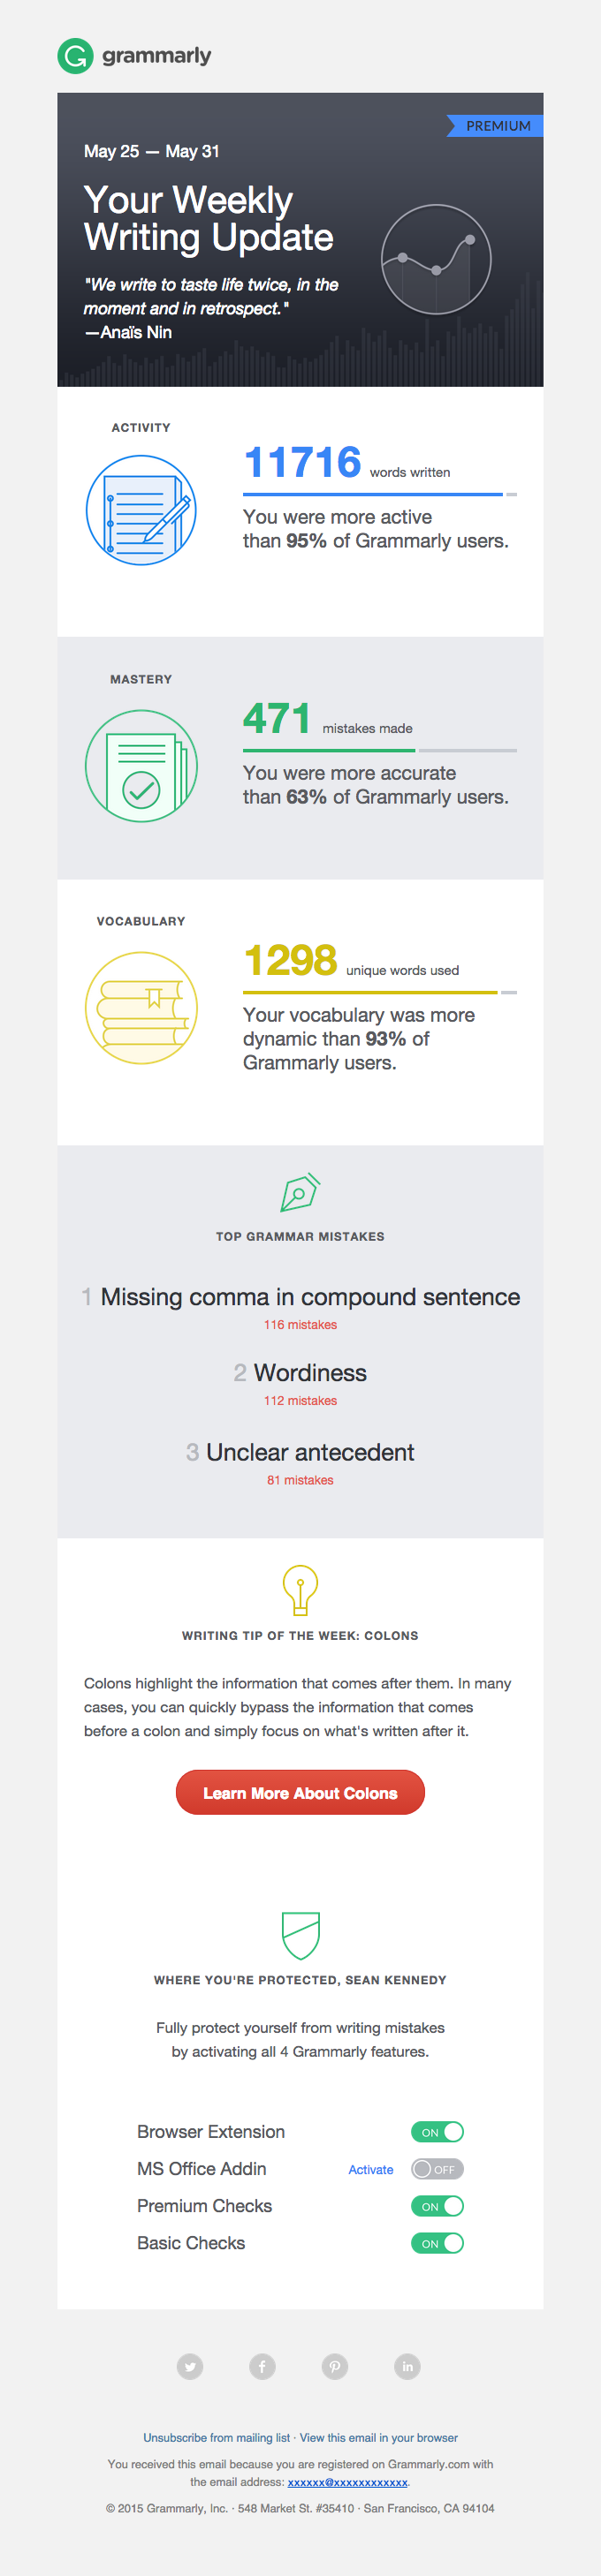 Example from Grammarly of email personalisation, a proven email marketing strategy small businesses can use for growth